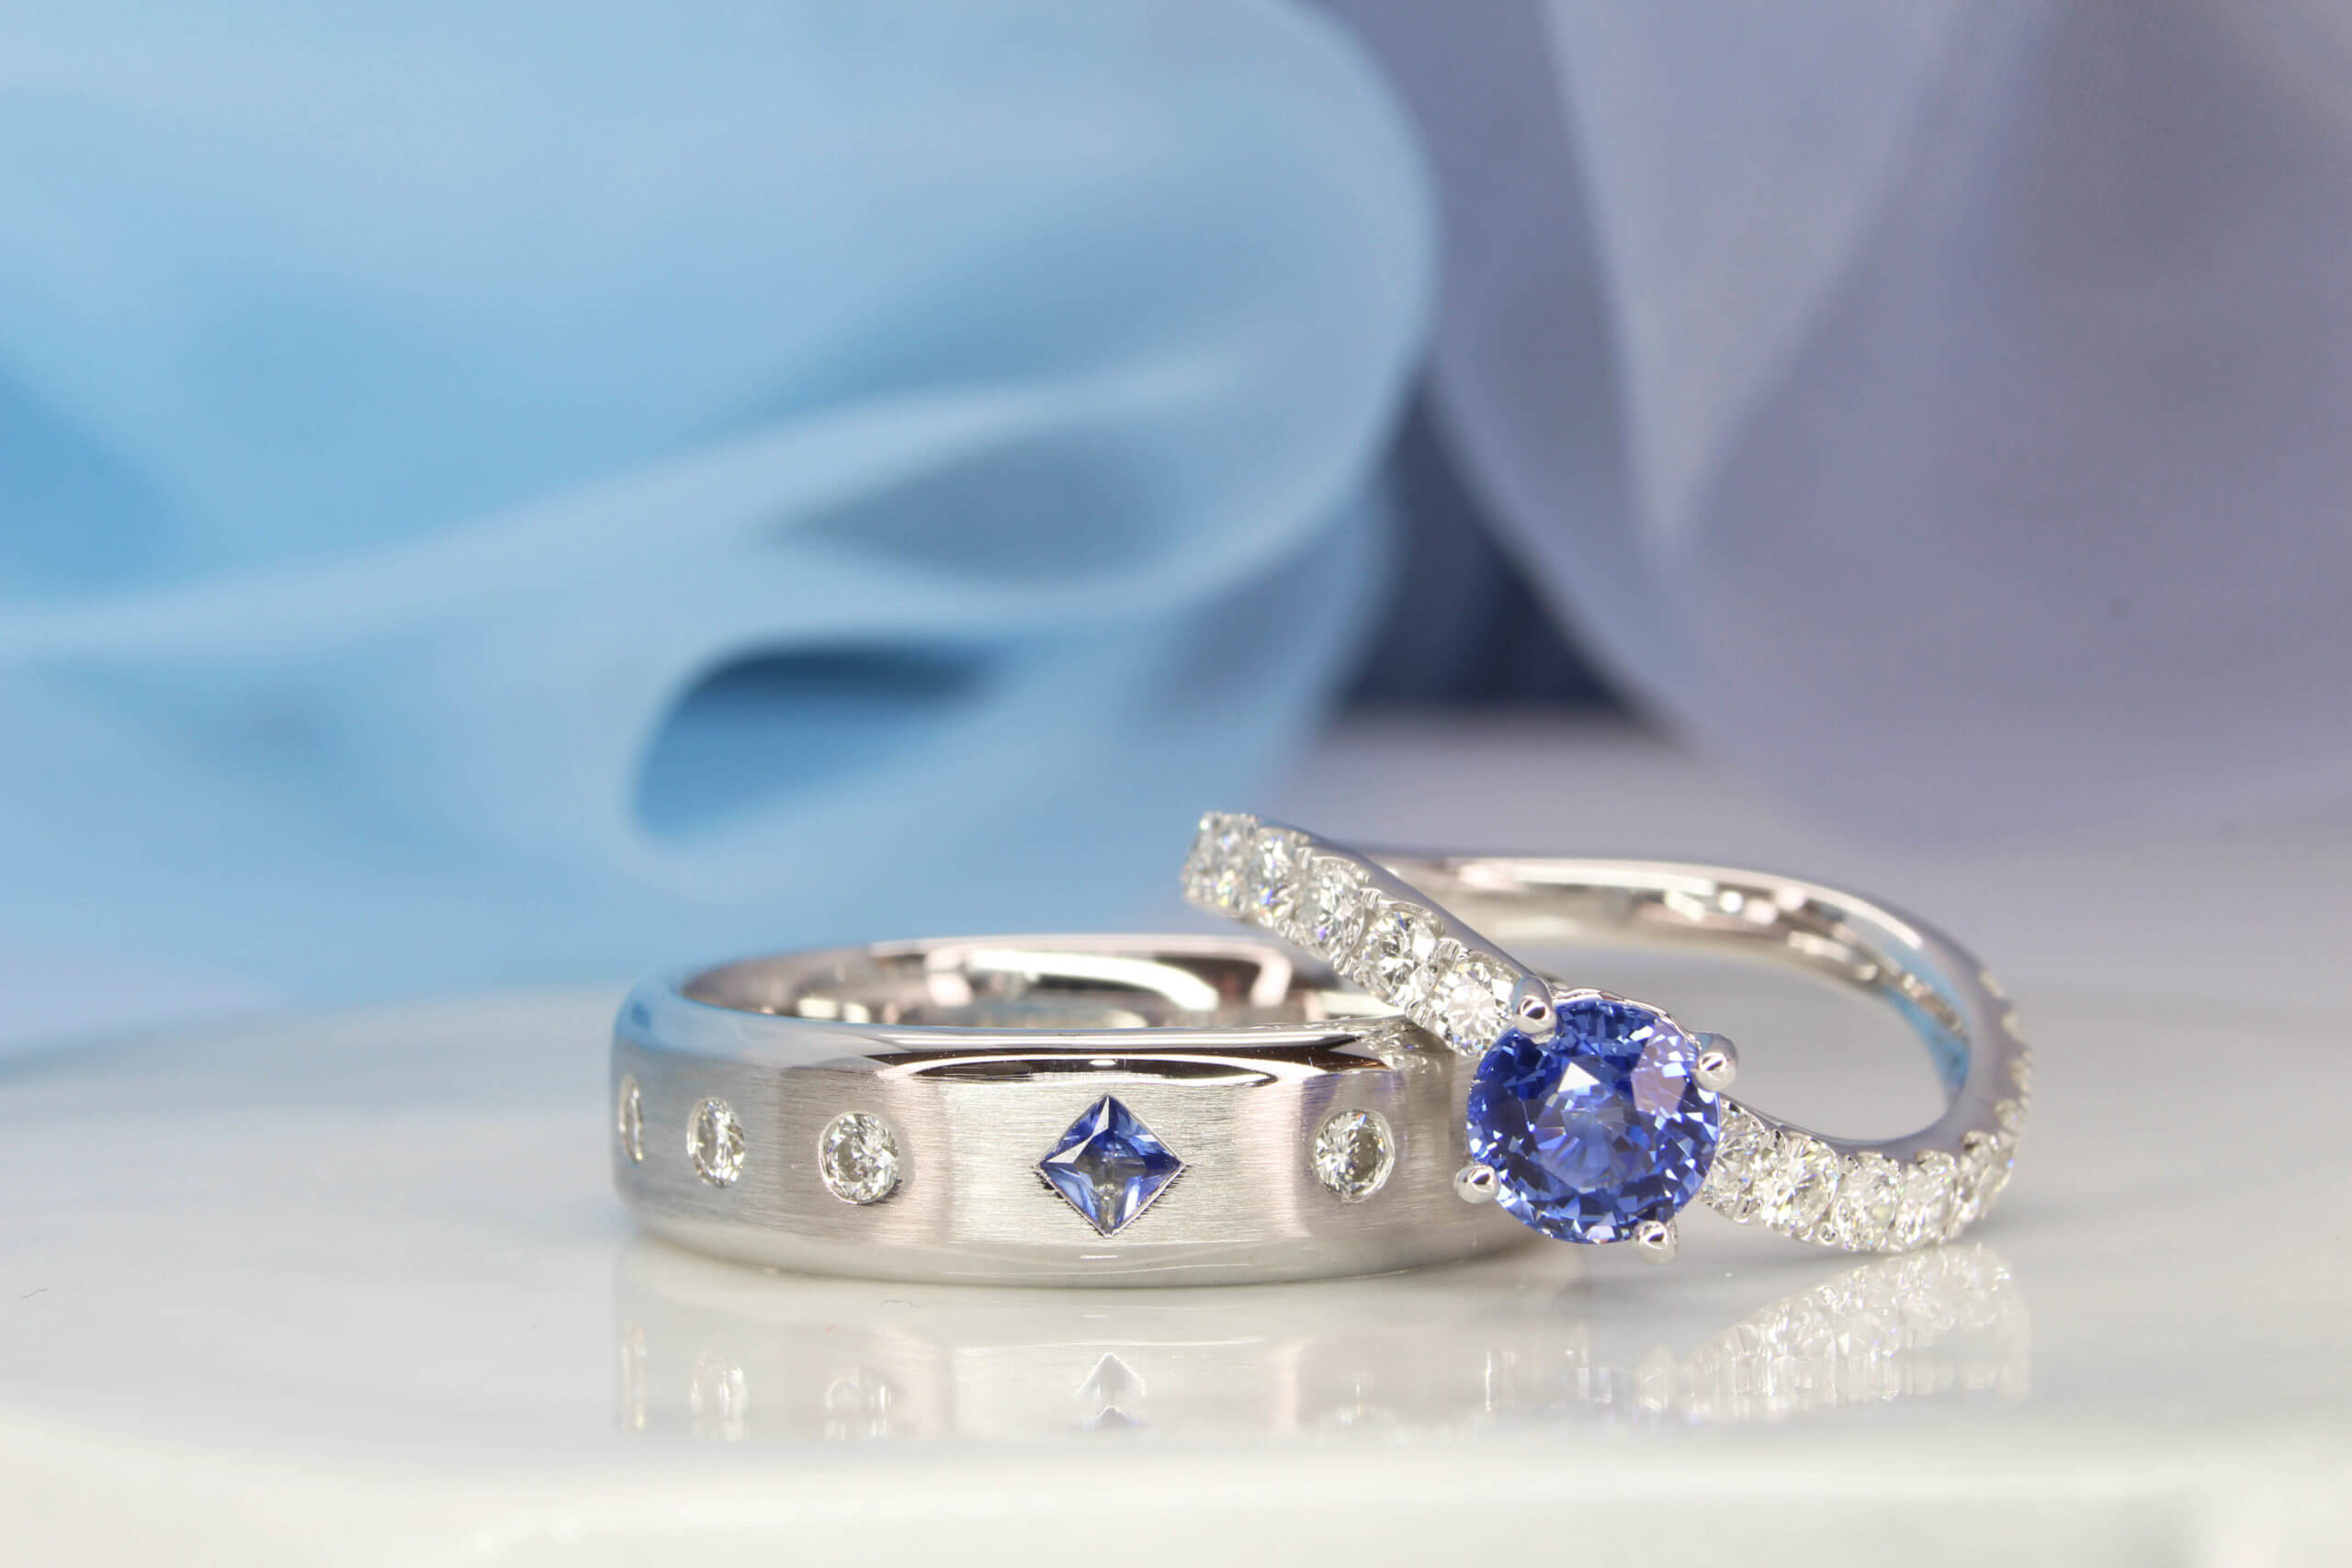 Anniversary Ring customised with Blue sapphire and round brilliance diamond. Customised for a couple keen on wanting a unique design for their wedding anniversary rings | Local Singapore Customised Wedding Anniversary Ring with Sapphire and Diamond